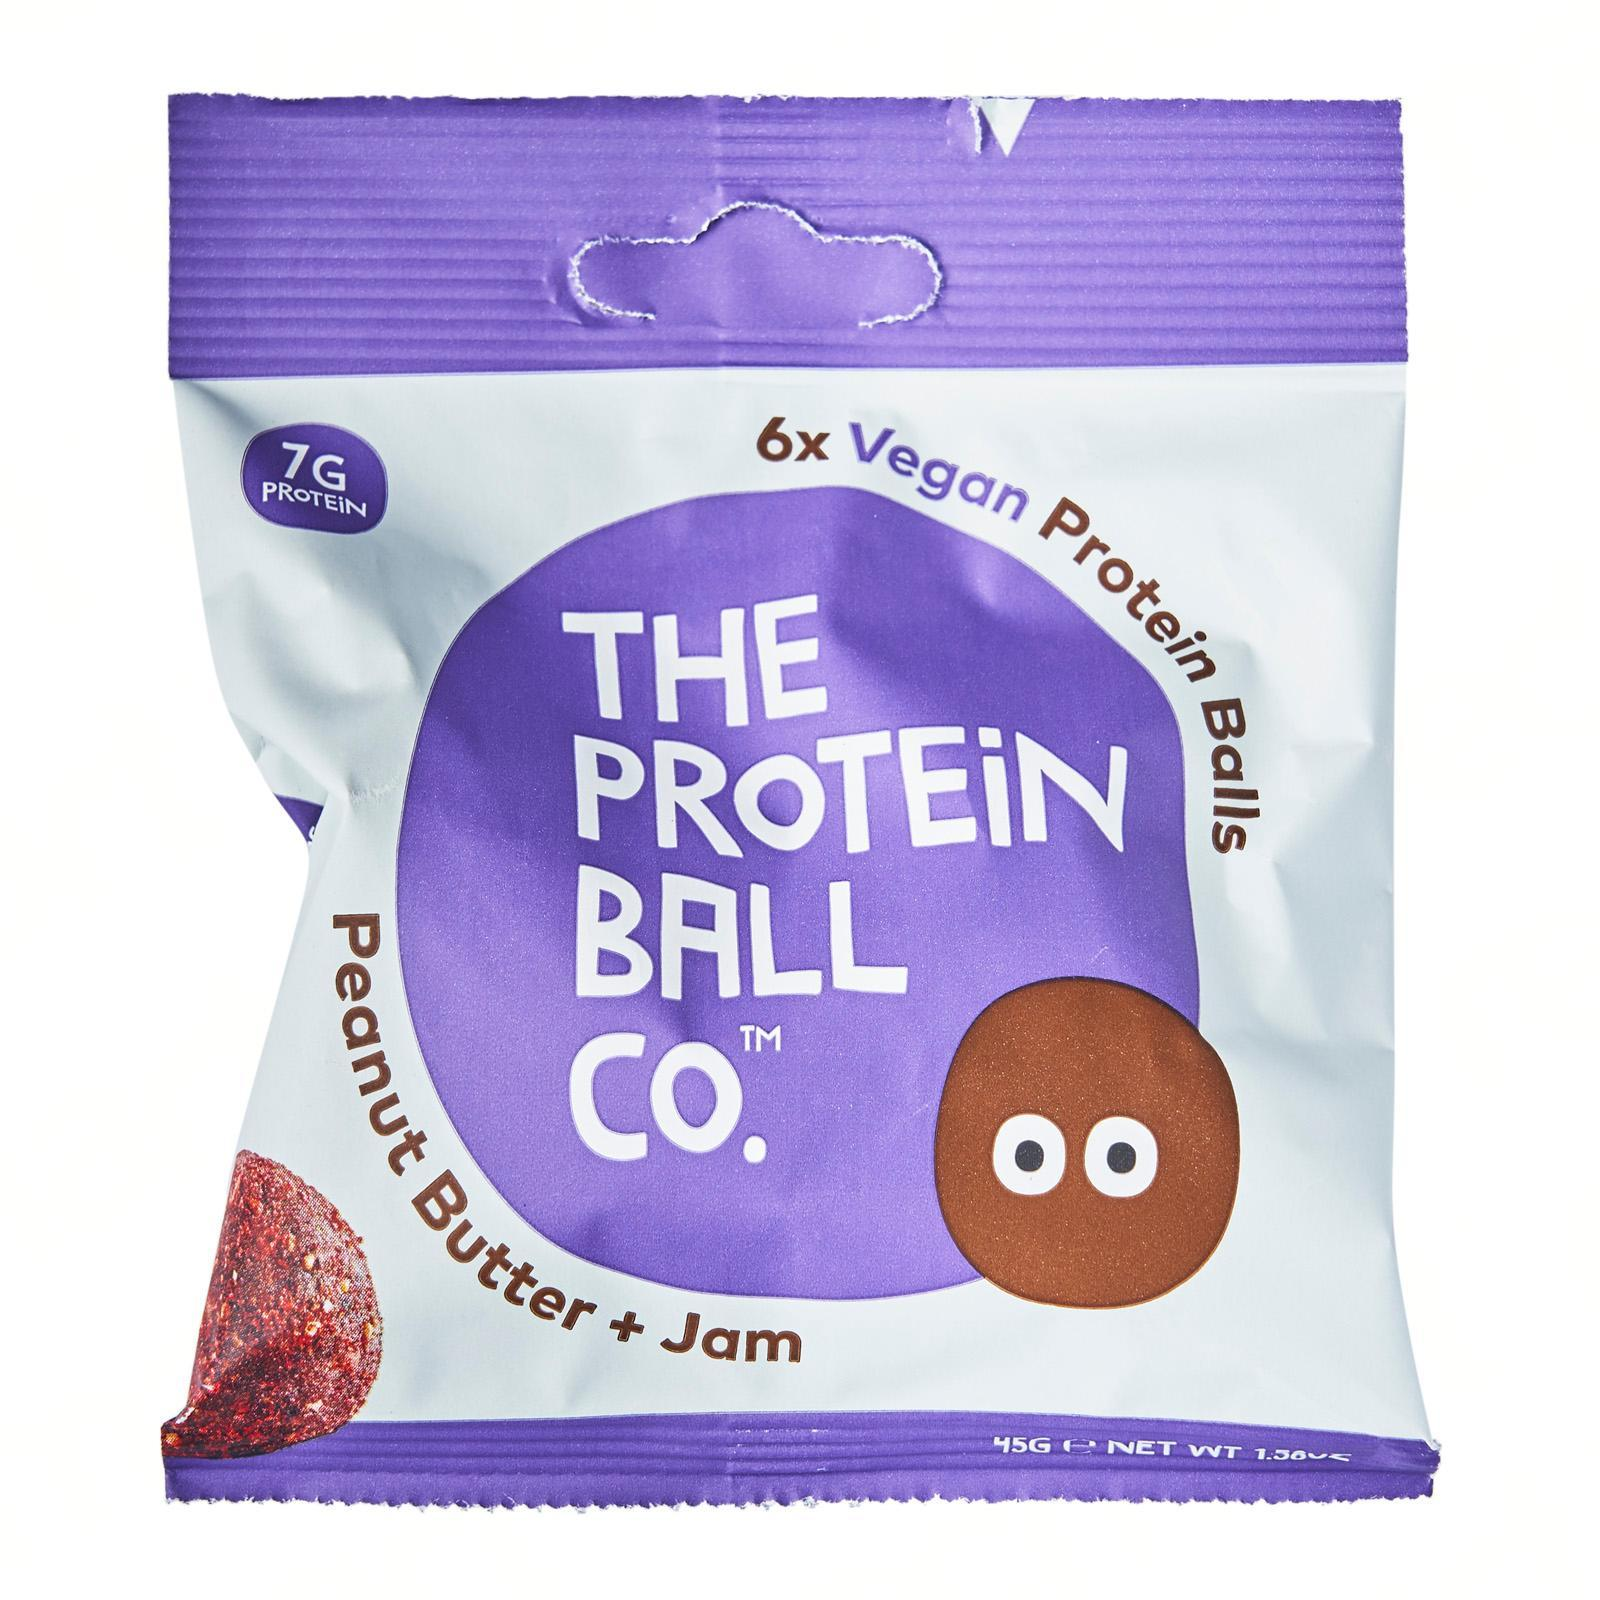 The Protein Ball Co All Natural Peanut Butter and Jam Vegan Protein Balls Snack